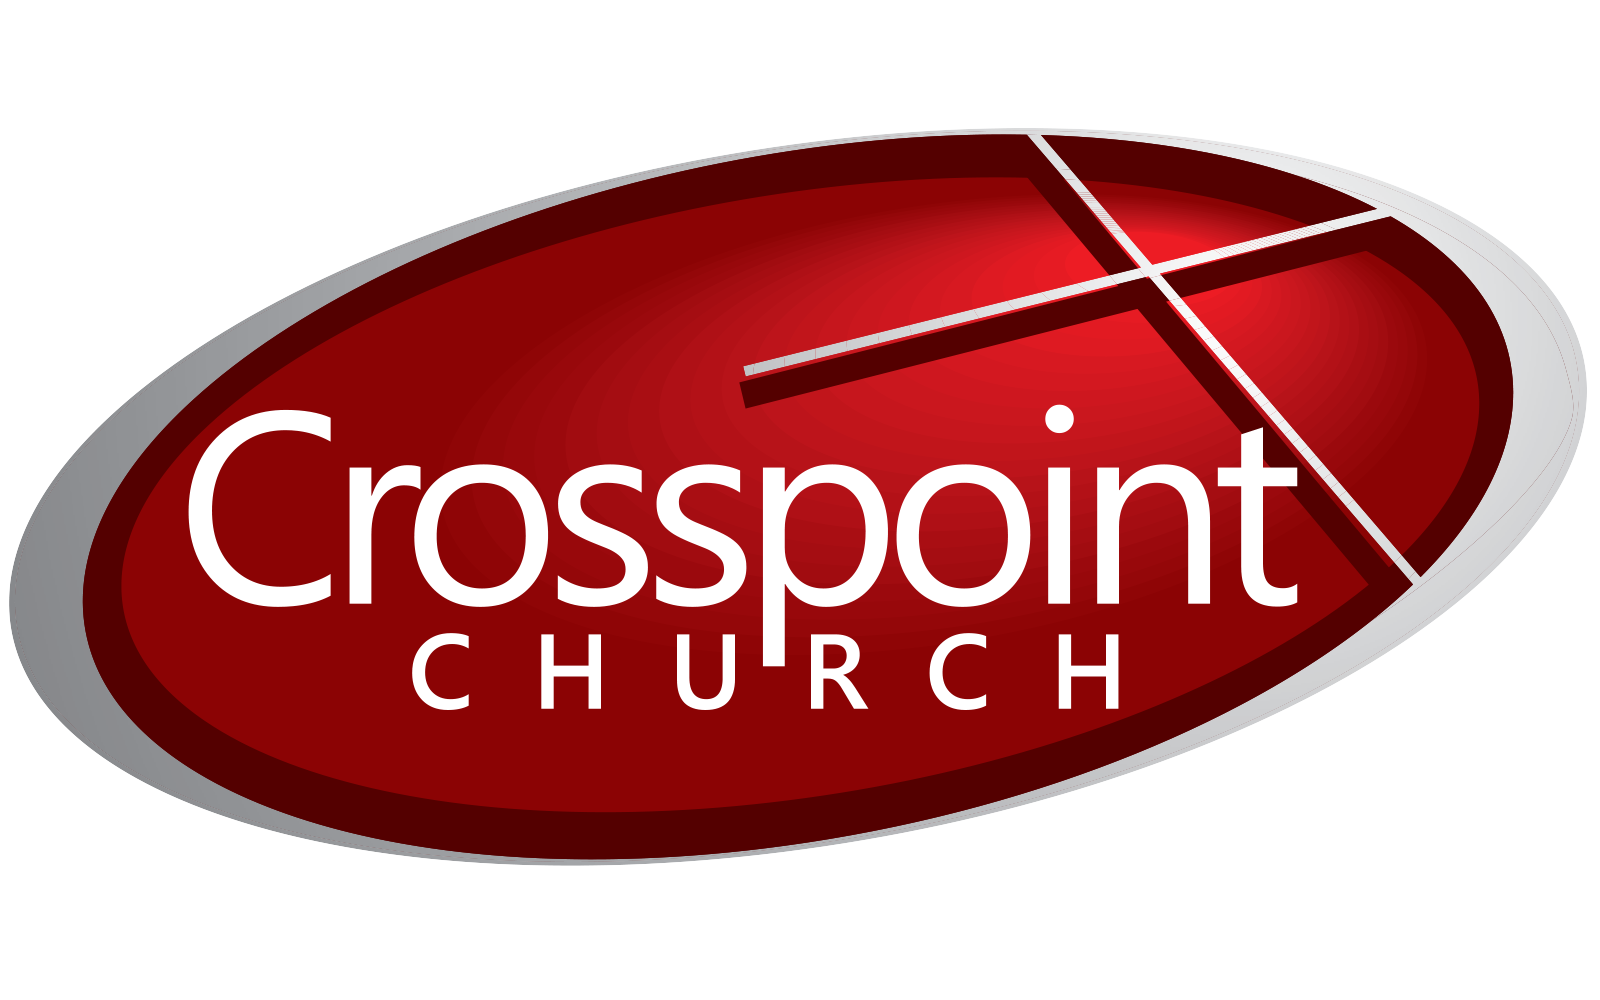 Crosspoint Church Broadway Bangor Maine